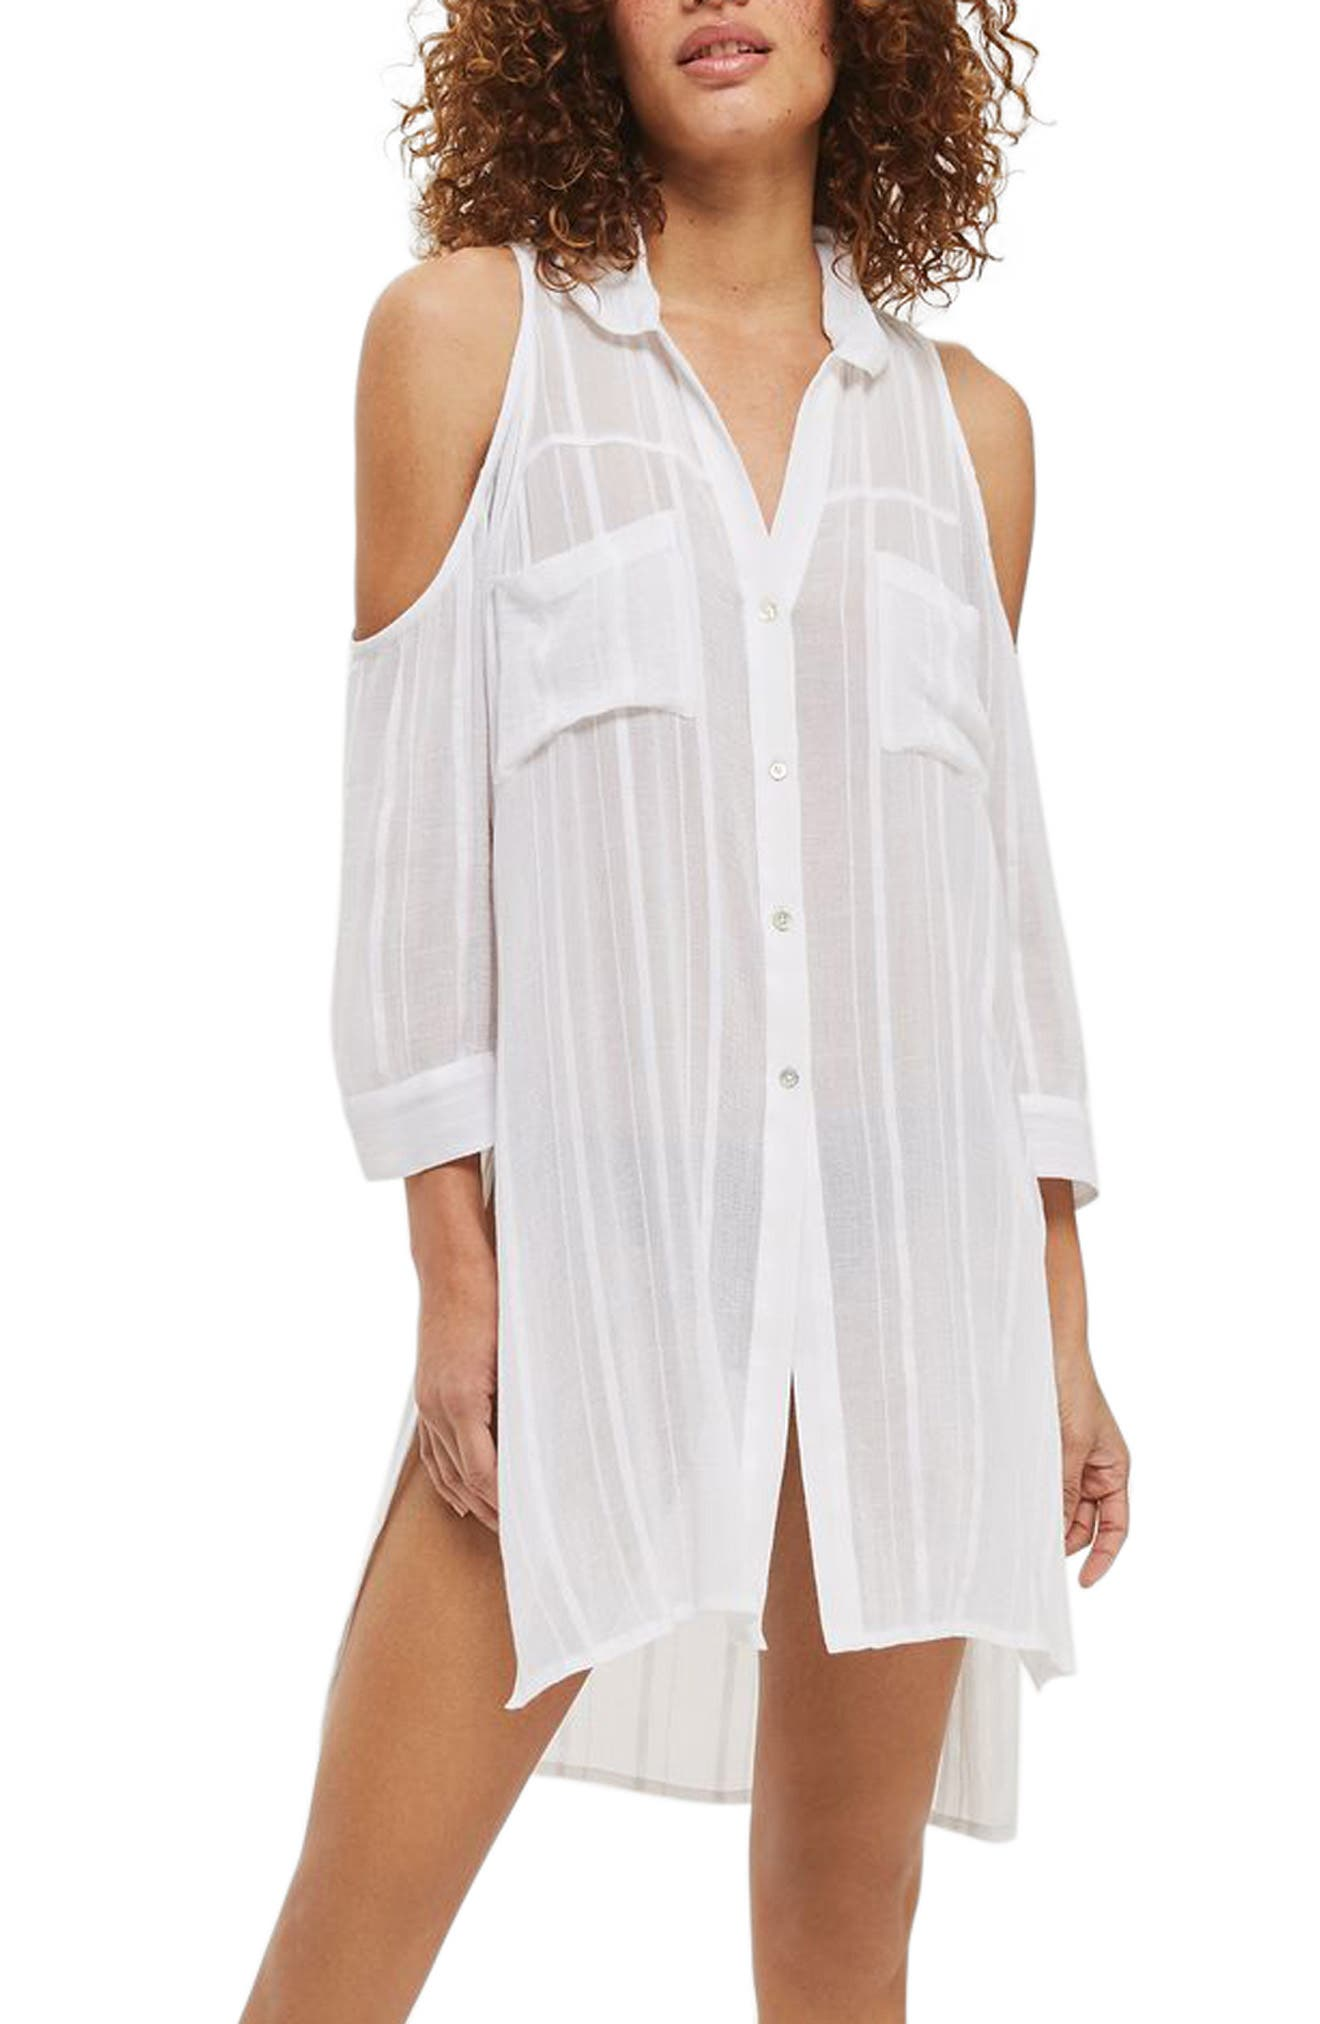 Topshop Jacquard Cold Shoulder Cover-Up